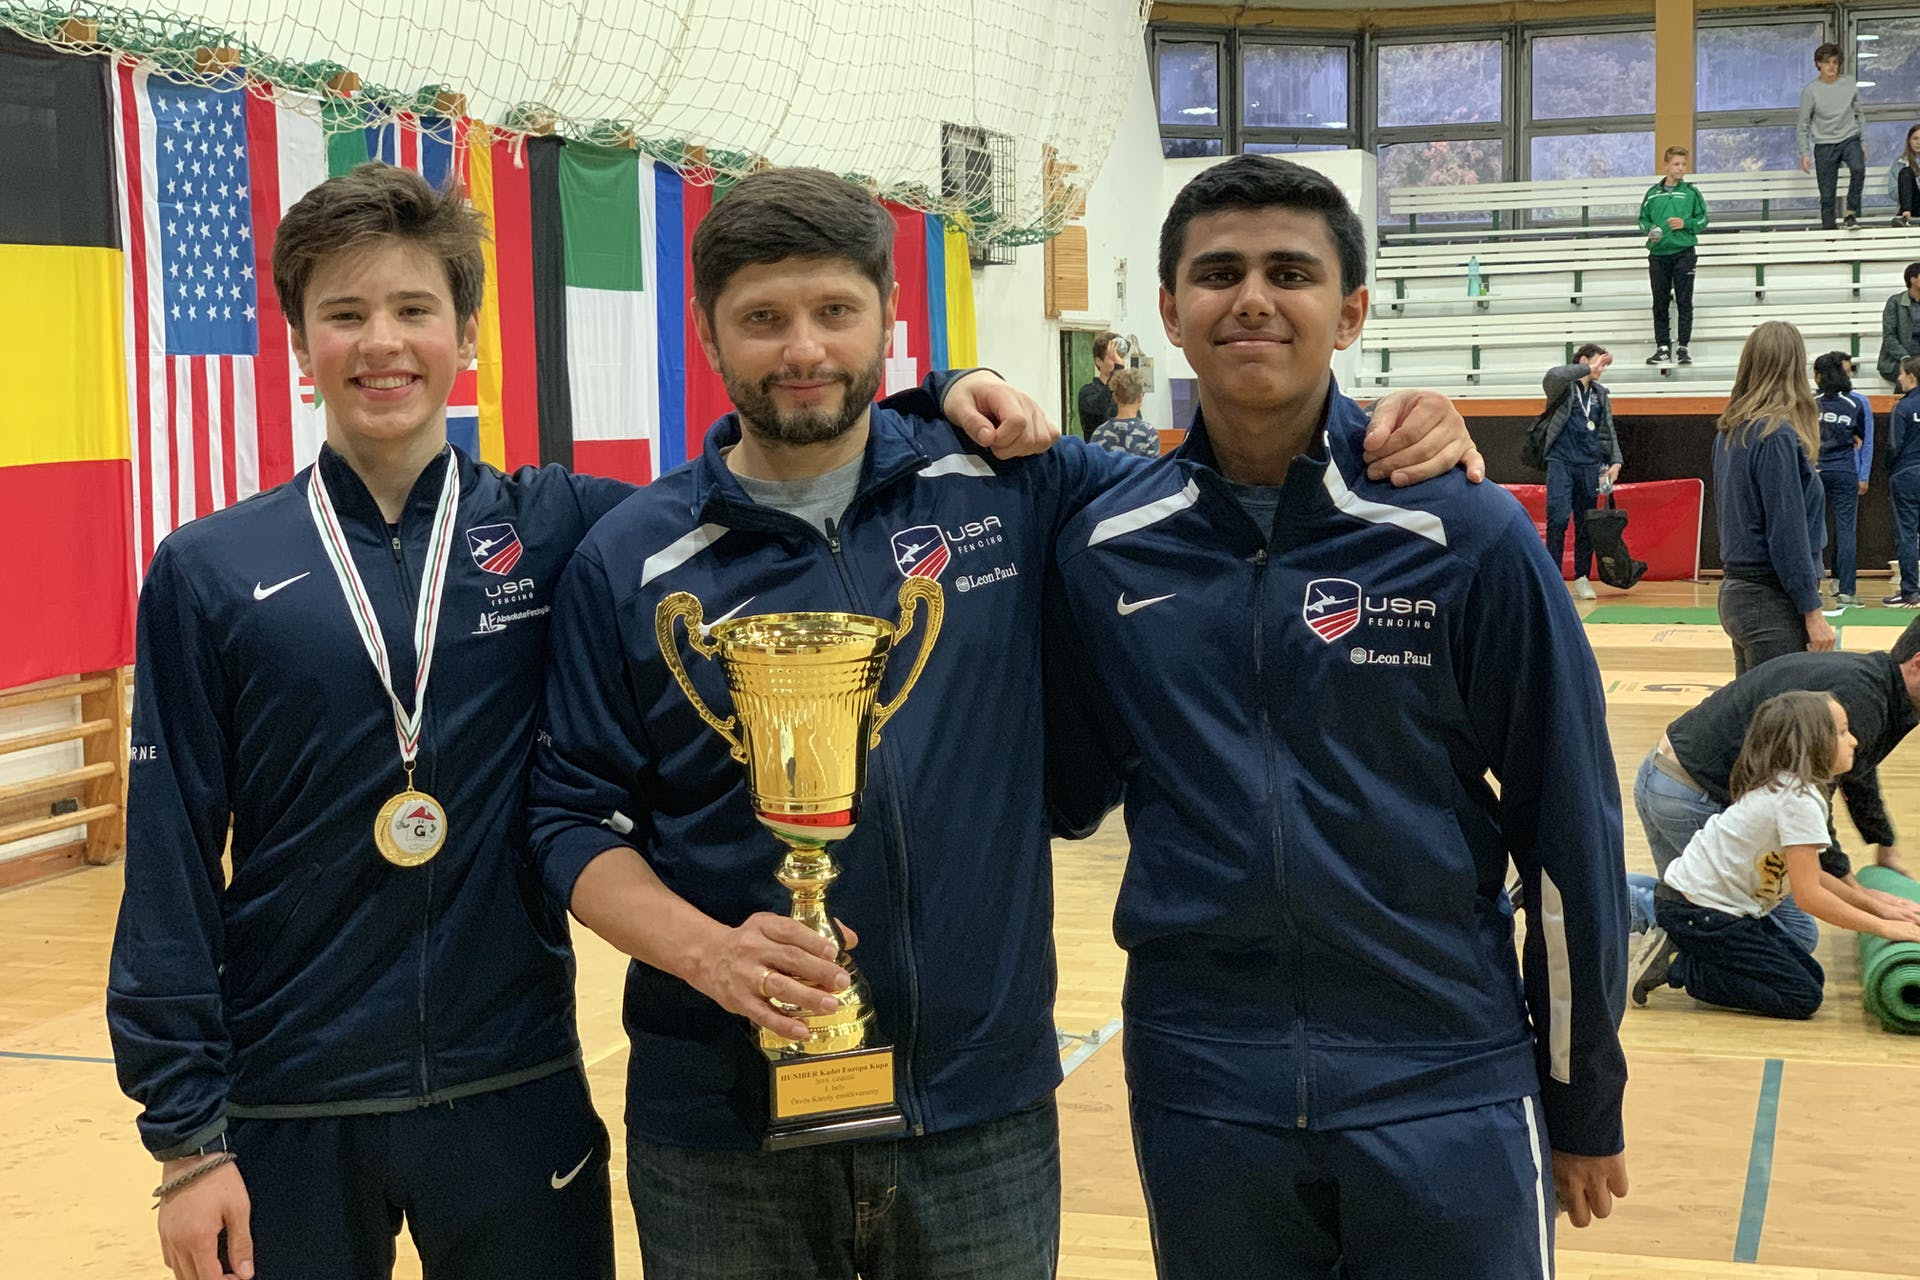 Simon Kushkov wins 5th individual and gold in Team (USA 1) at Cadet World Cup in Godollo, Hungary (2019). Surya Sakhamuri makes top 32, and has earned national and world points.